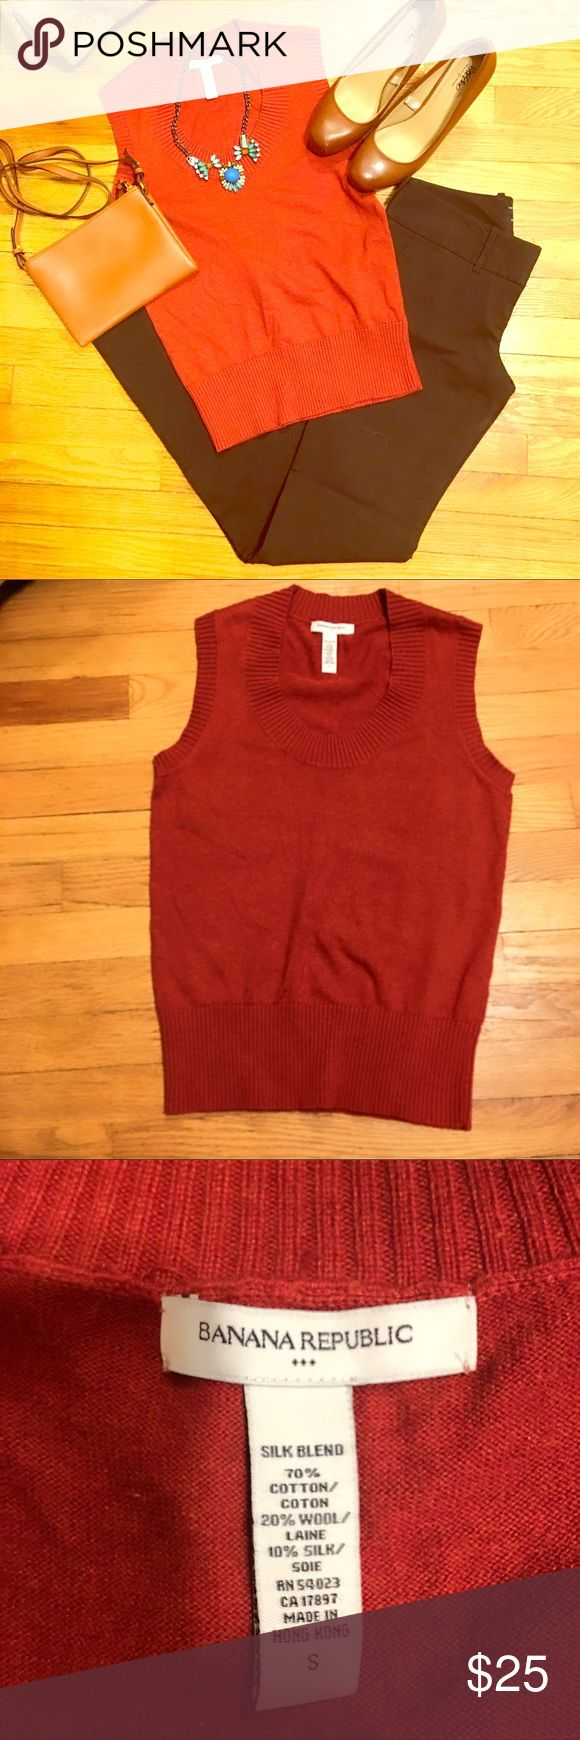 """🆕 Banana Republic Burnt Orange/Red Sweater Tank S 🆕New to the Closet🆕 Burnt orange/dark red sleeveless sweater tank. Size S from Banana Republic. Very soft and has the perfect amount of stretch. Overall length (flat) is 24"""", and 9"""" wide armhole. Silk blend- 70% cotton, 20% wool, 10% silk. Definitely to dry clean this baby unless you have some special powers I don't know existed. (Please share?) Retail: $59.50. [KL] Banana Republic Tops Tank Tops"""